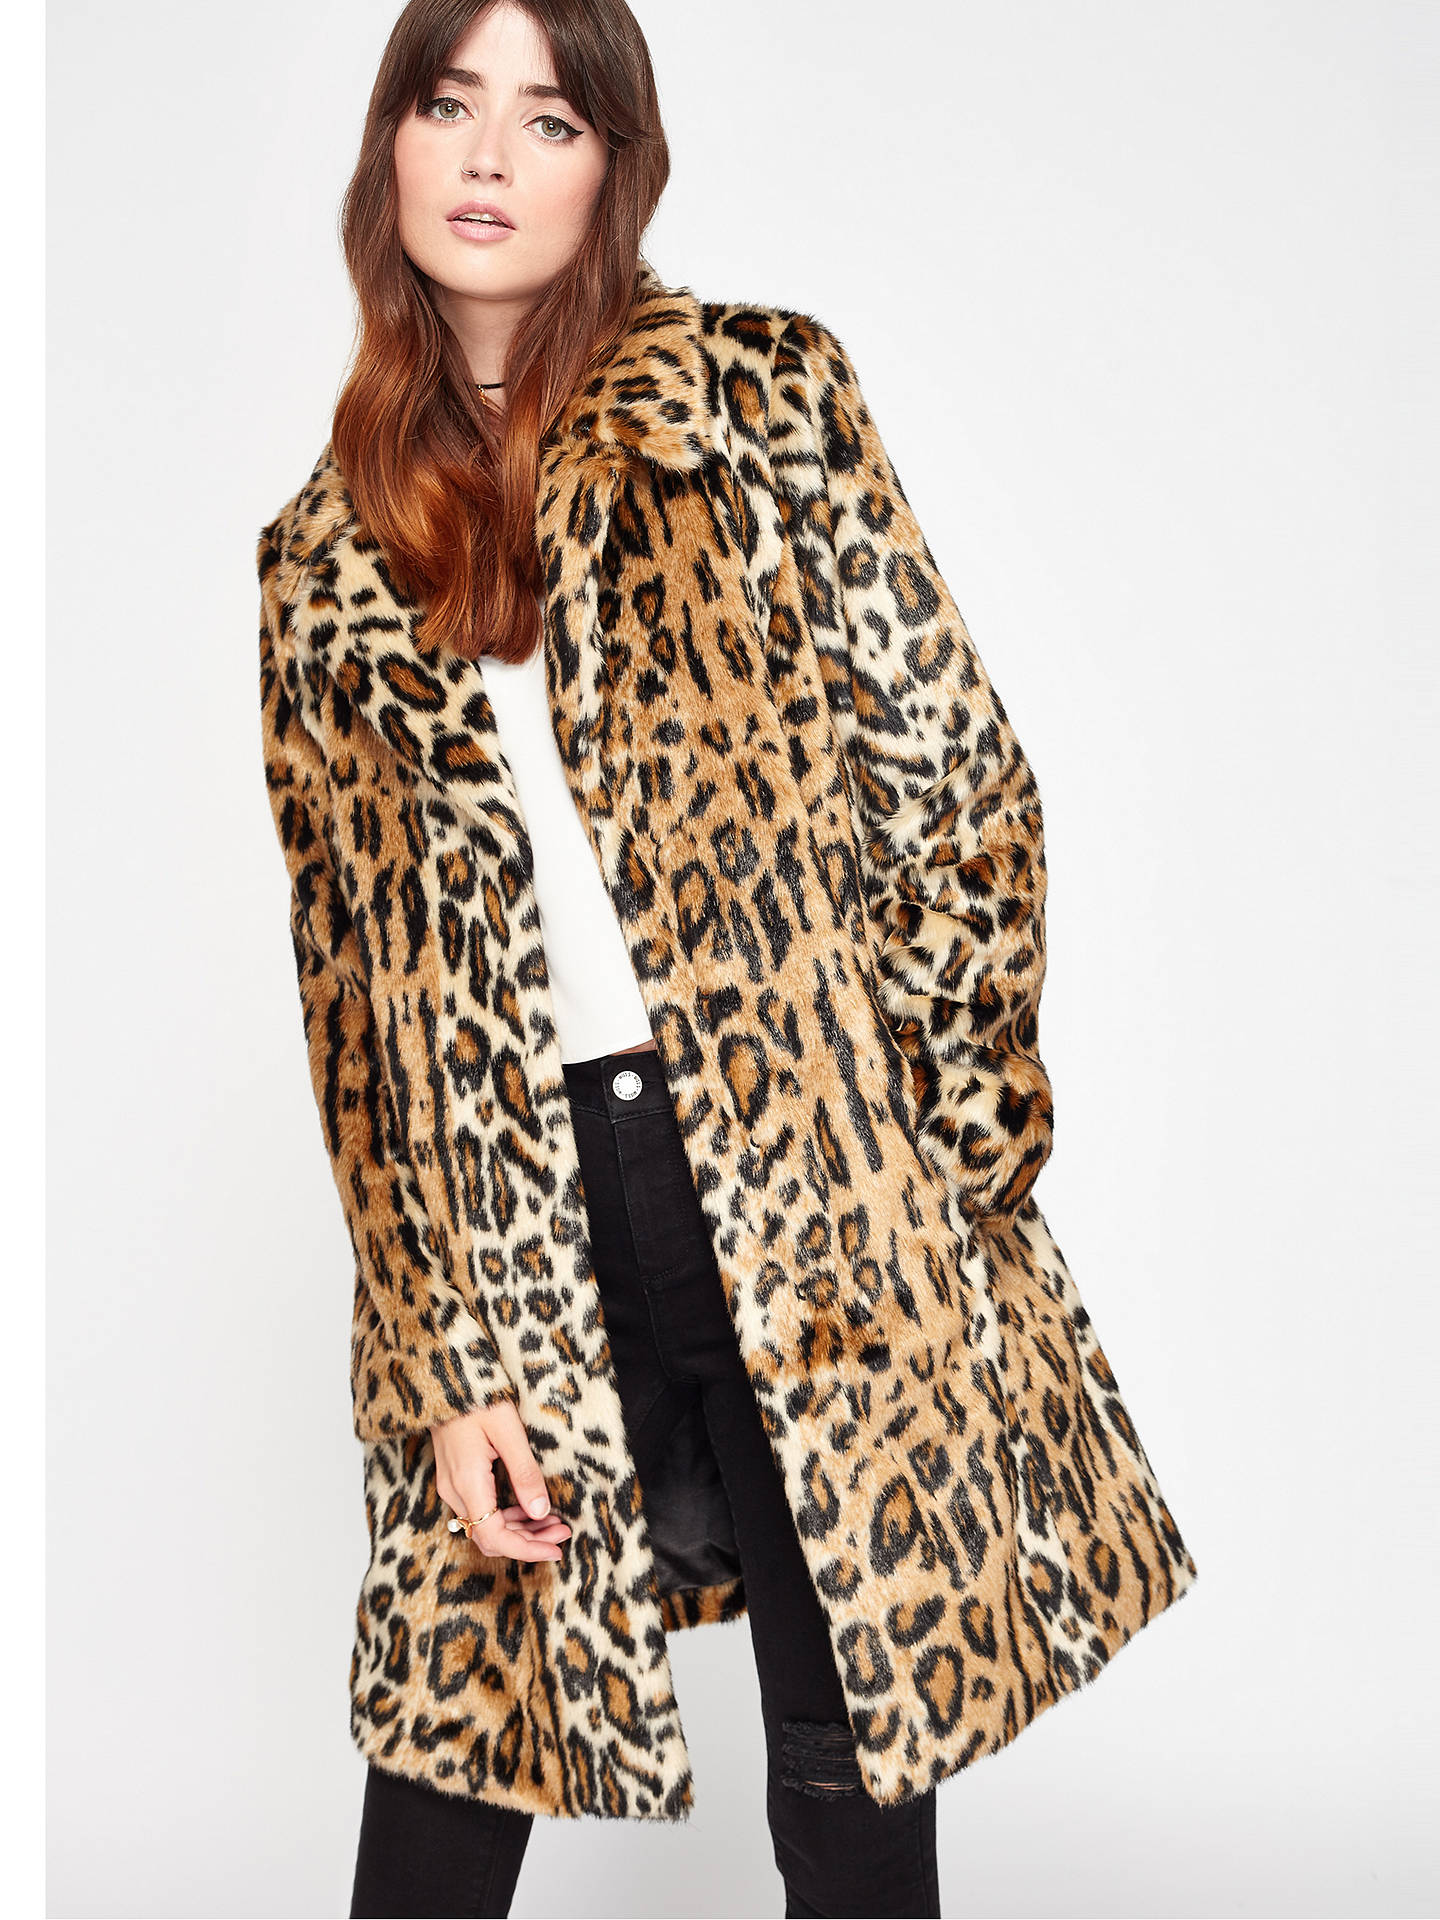 BuyMiss Selfridge Leopard Print Faux Fur Coat, Mid Brown, S Online at johnlewis.com